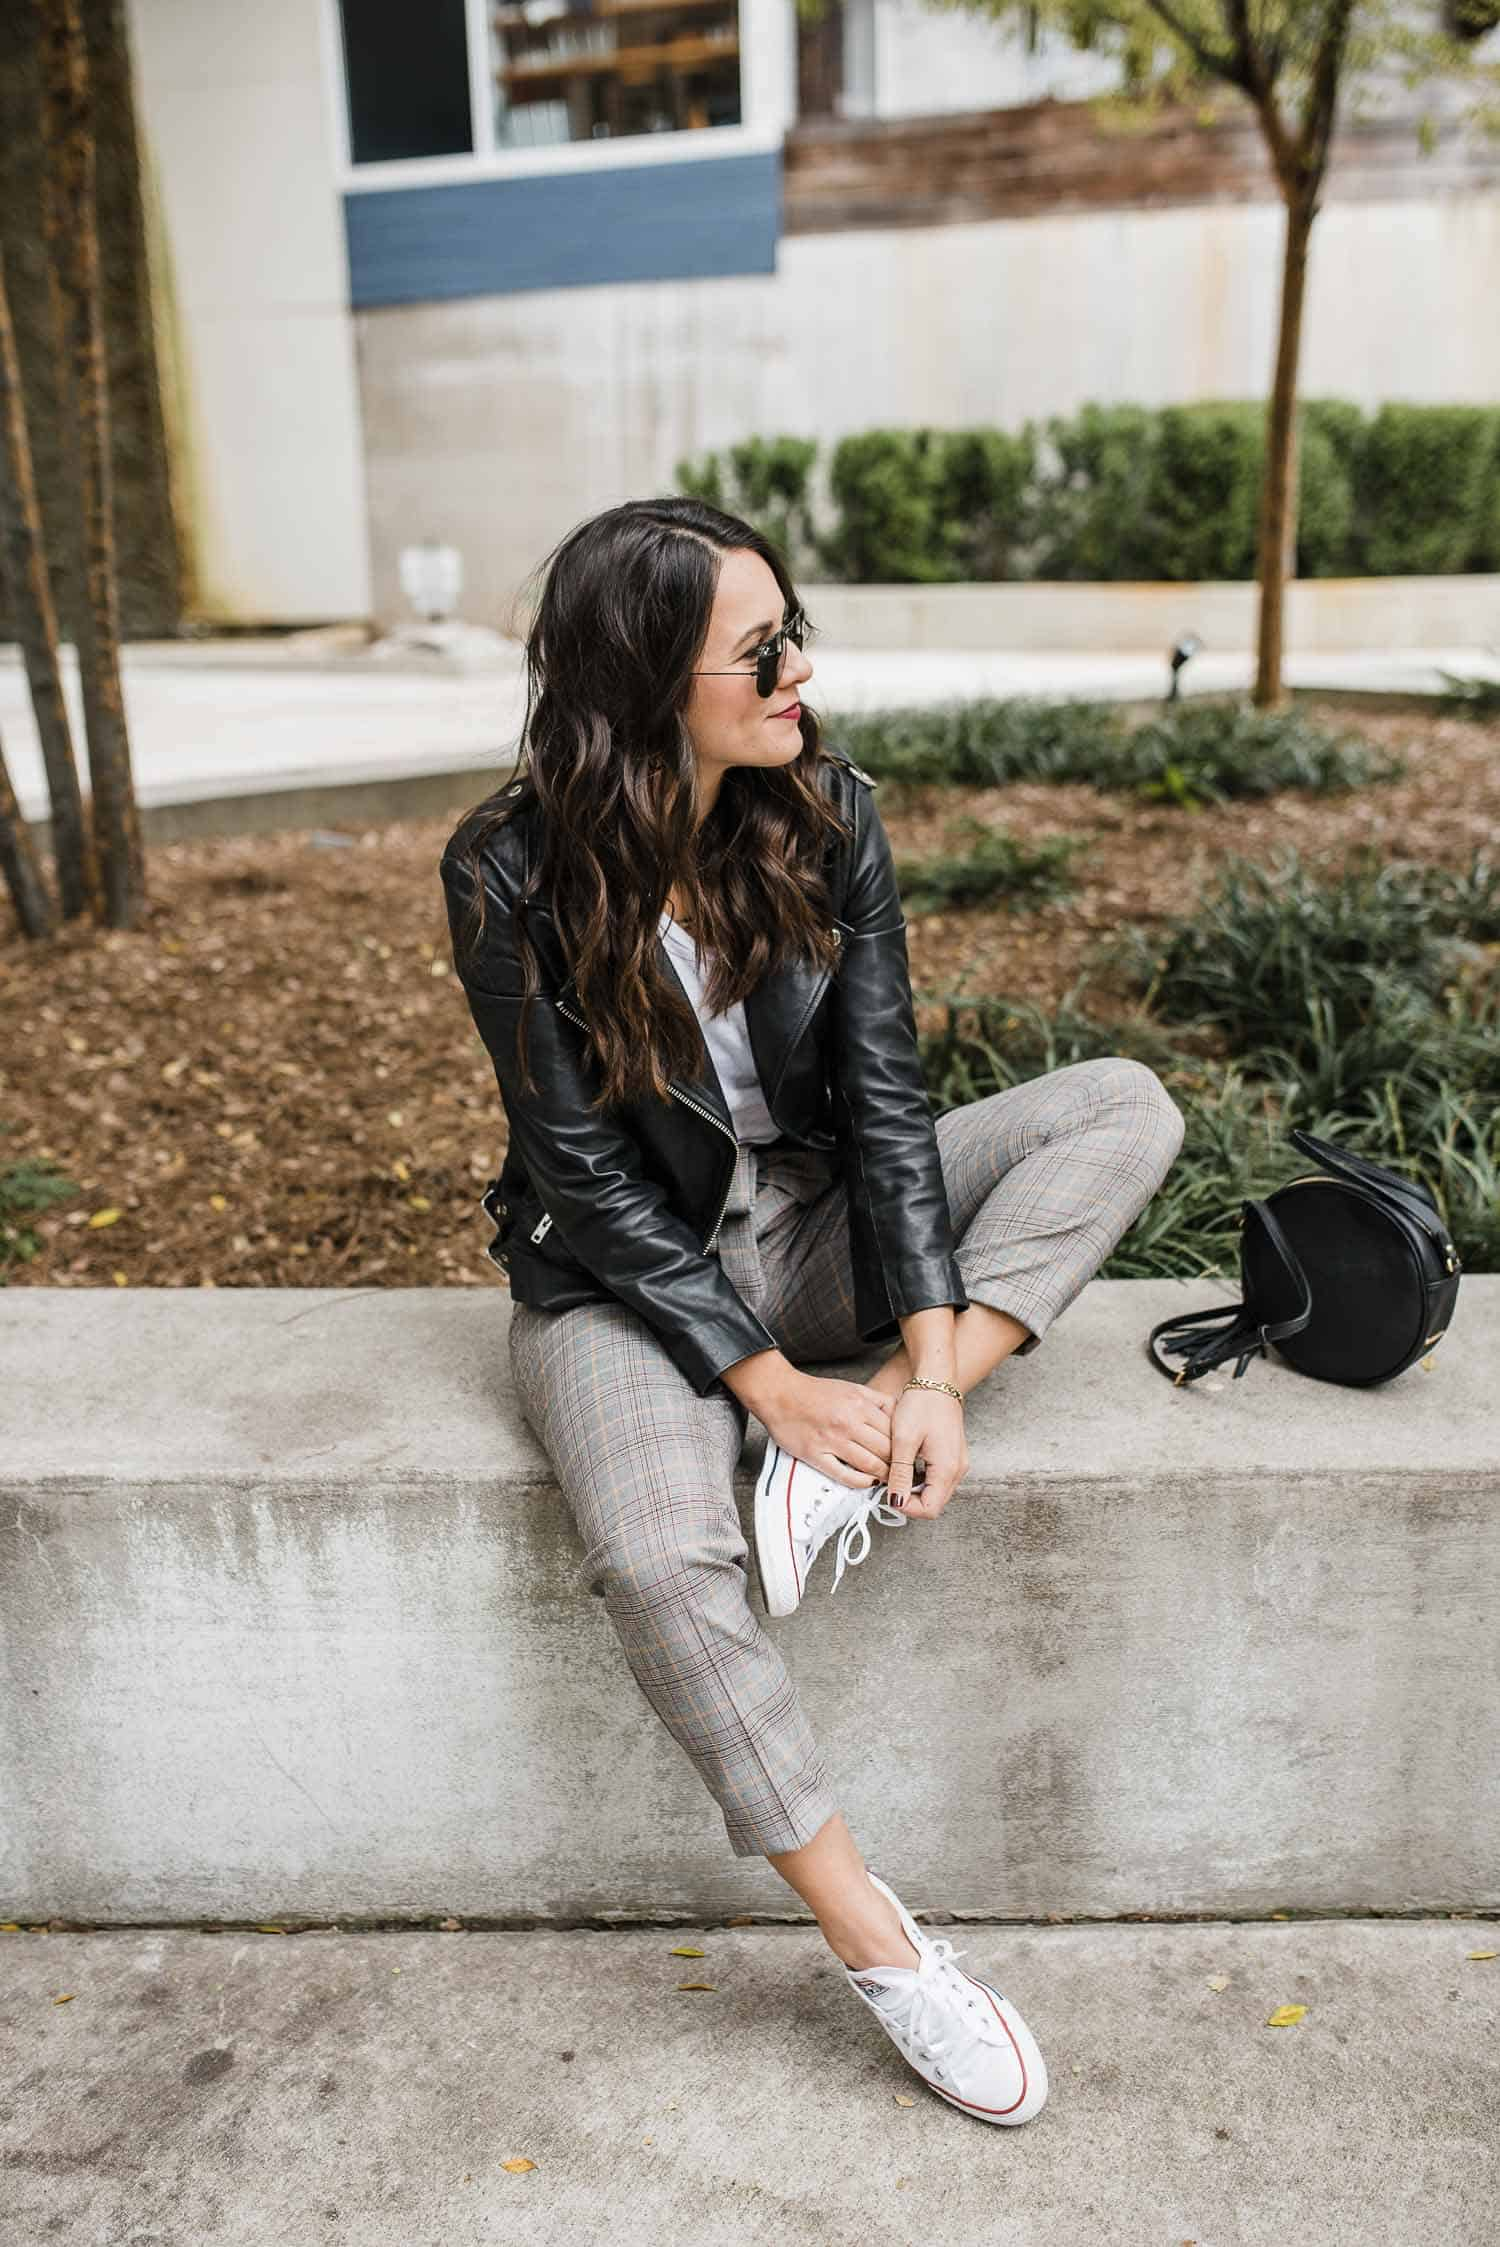 Express Trousers • Caslon White Tee • Leather Jacket • Converse • Ray-Ban Aviators • Beautycounter Lipstick in Girls' Night • Gigi New York Circle Bag